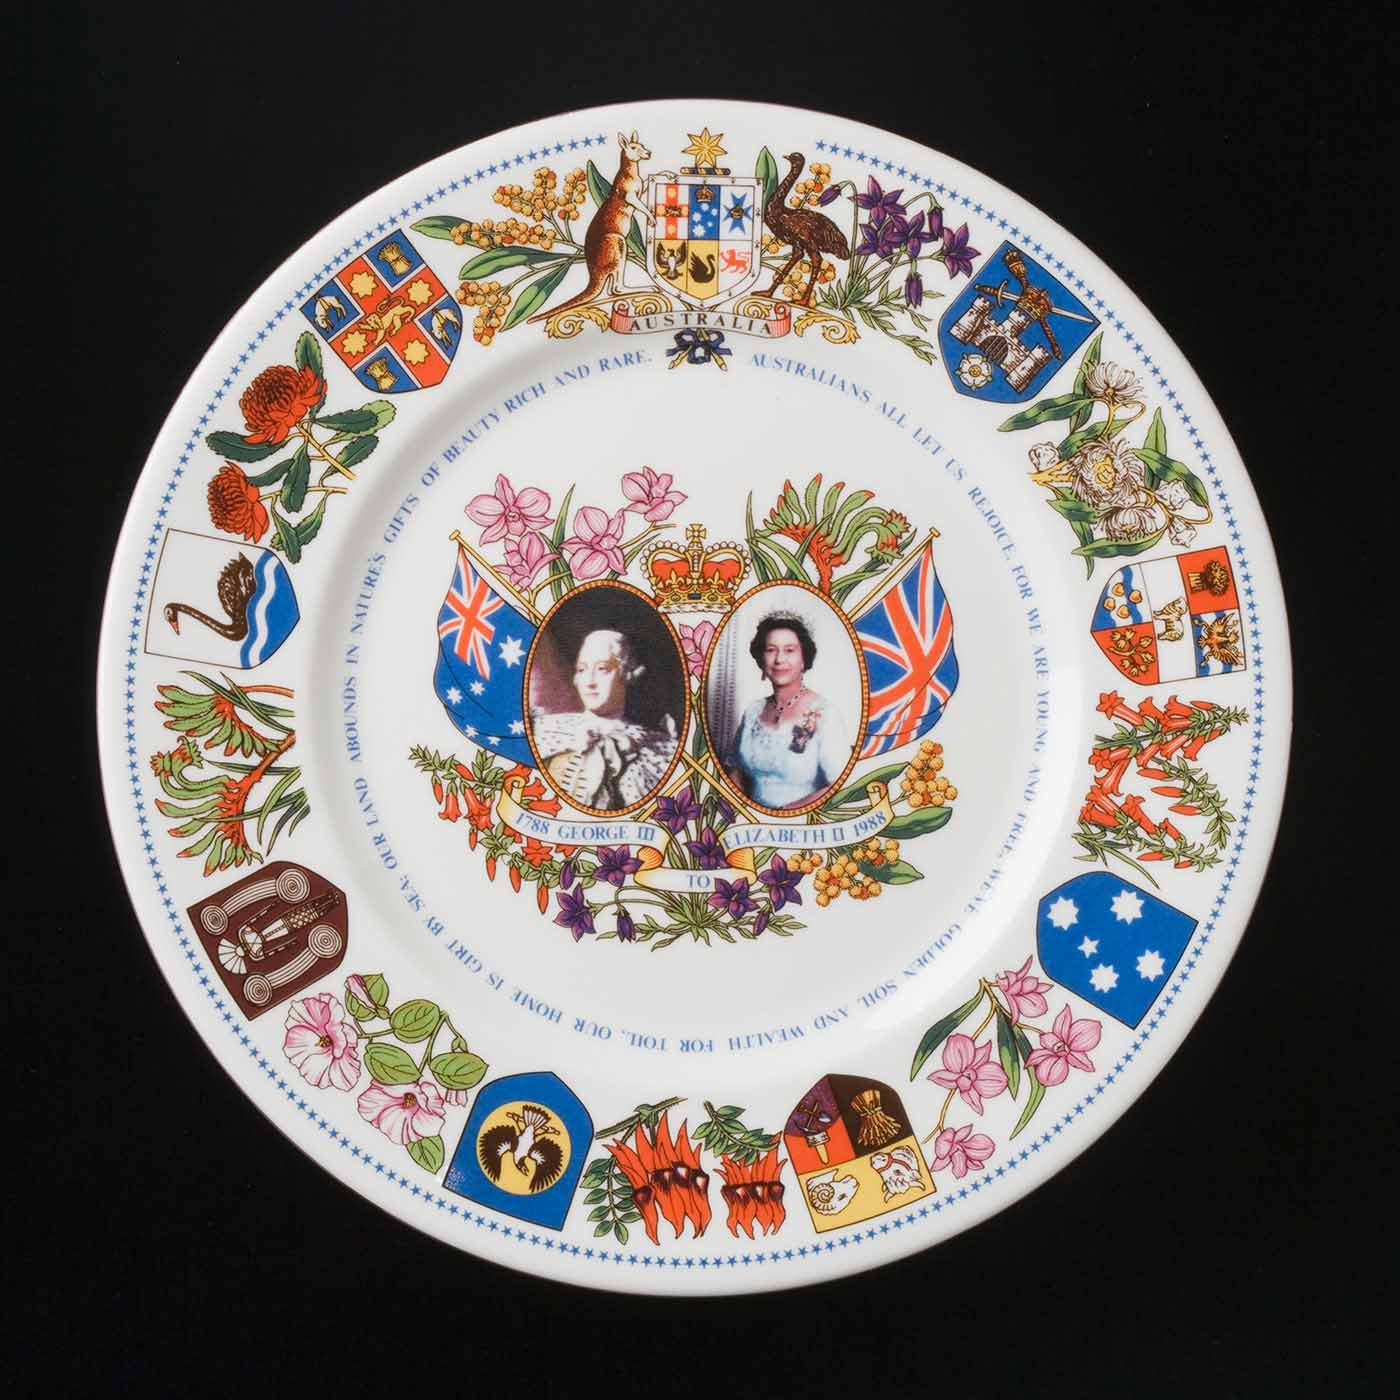 A coloured photograph of a plate which with the Australian coat of arms, state heraldry and floral emblems around its border. At the centre of the plate there are portraits of King George III and Queen Elizabeth II, surrounded by Australian flowers, the Union Jack and Australian flag. Some of the words from the national anthem are printed around the plate: 'Australians all let us rejoice, for we are young and free, we've golden soil and wealth for toil, our home is girt by sea, our land abounds in nature's gifts of beauty rich and rare ...'  - click to view larger image